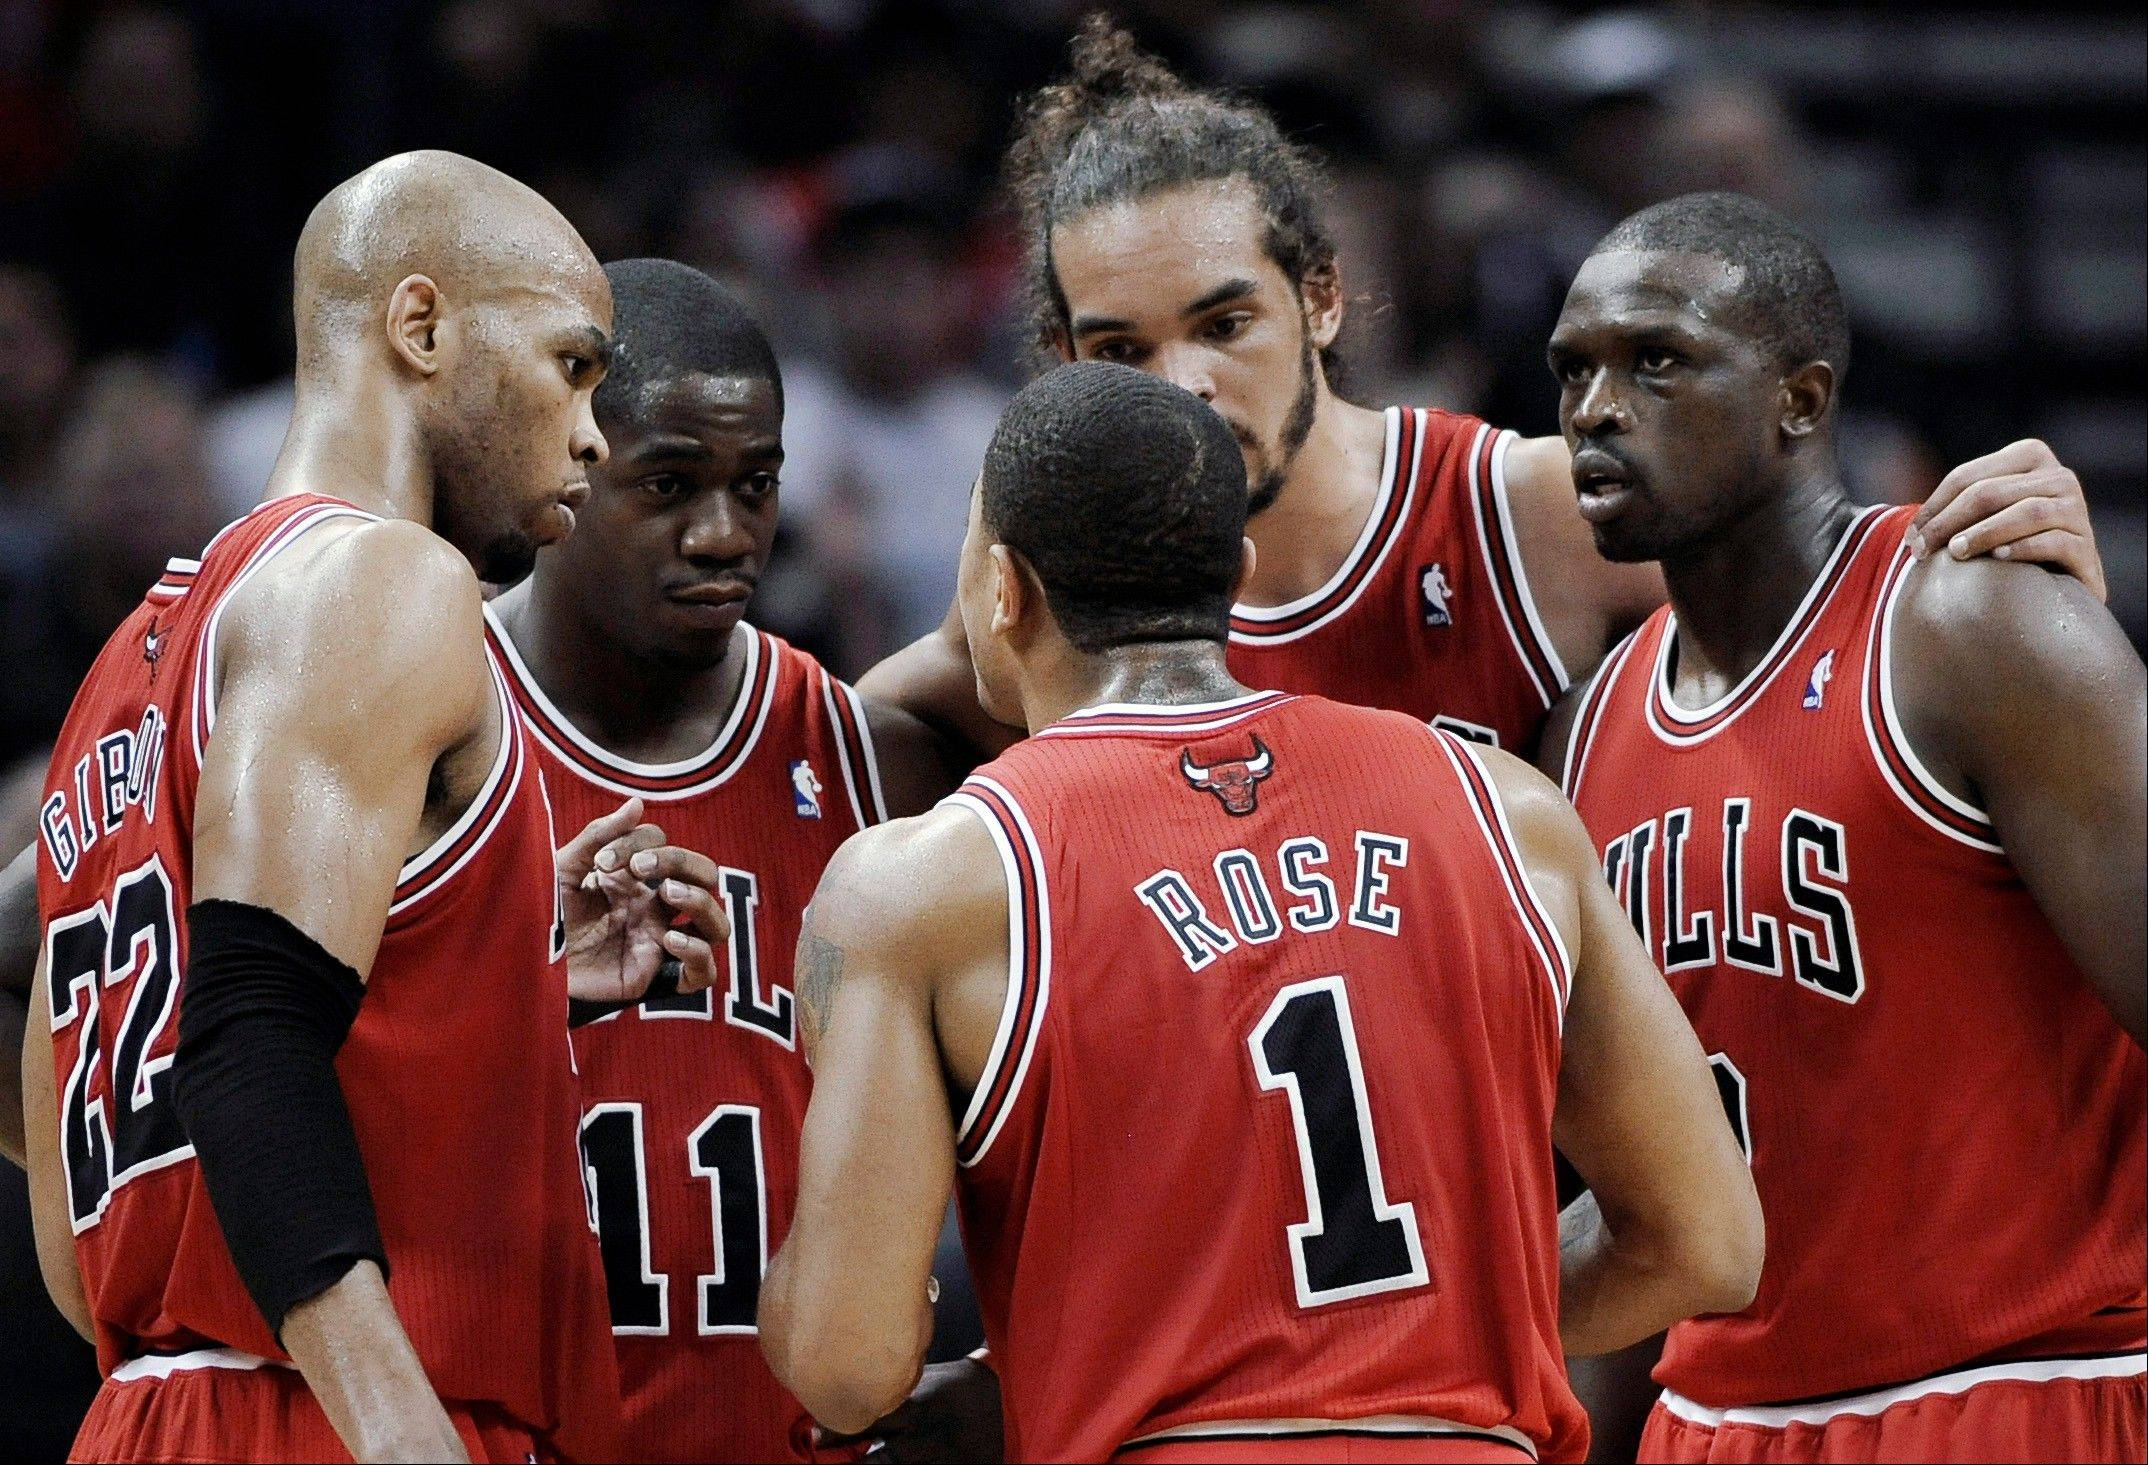 Bulls pass first test of tough stretch